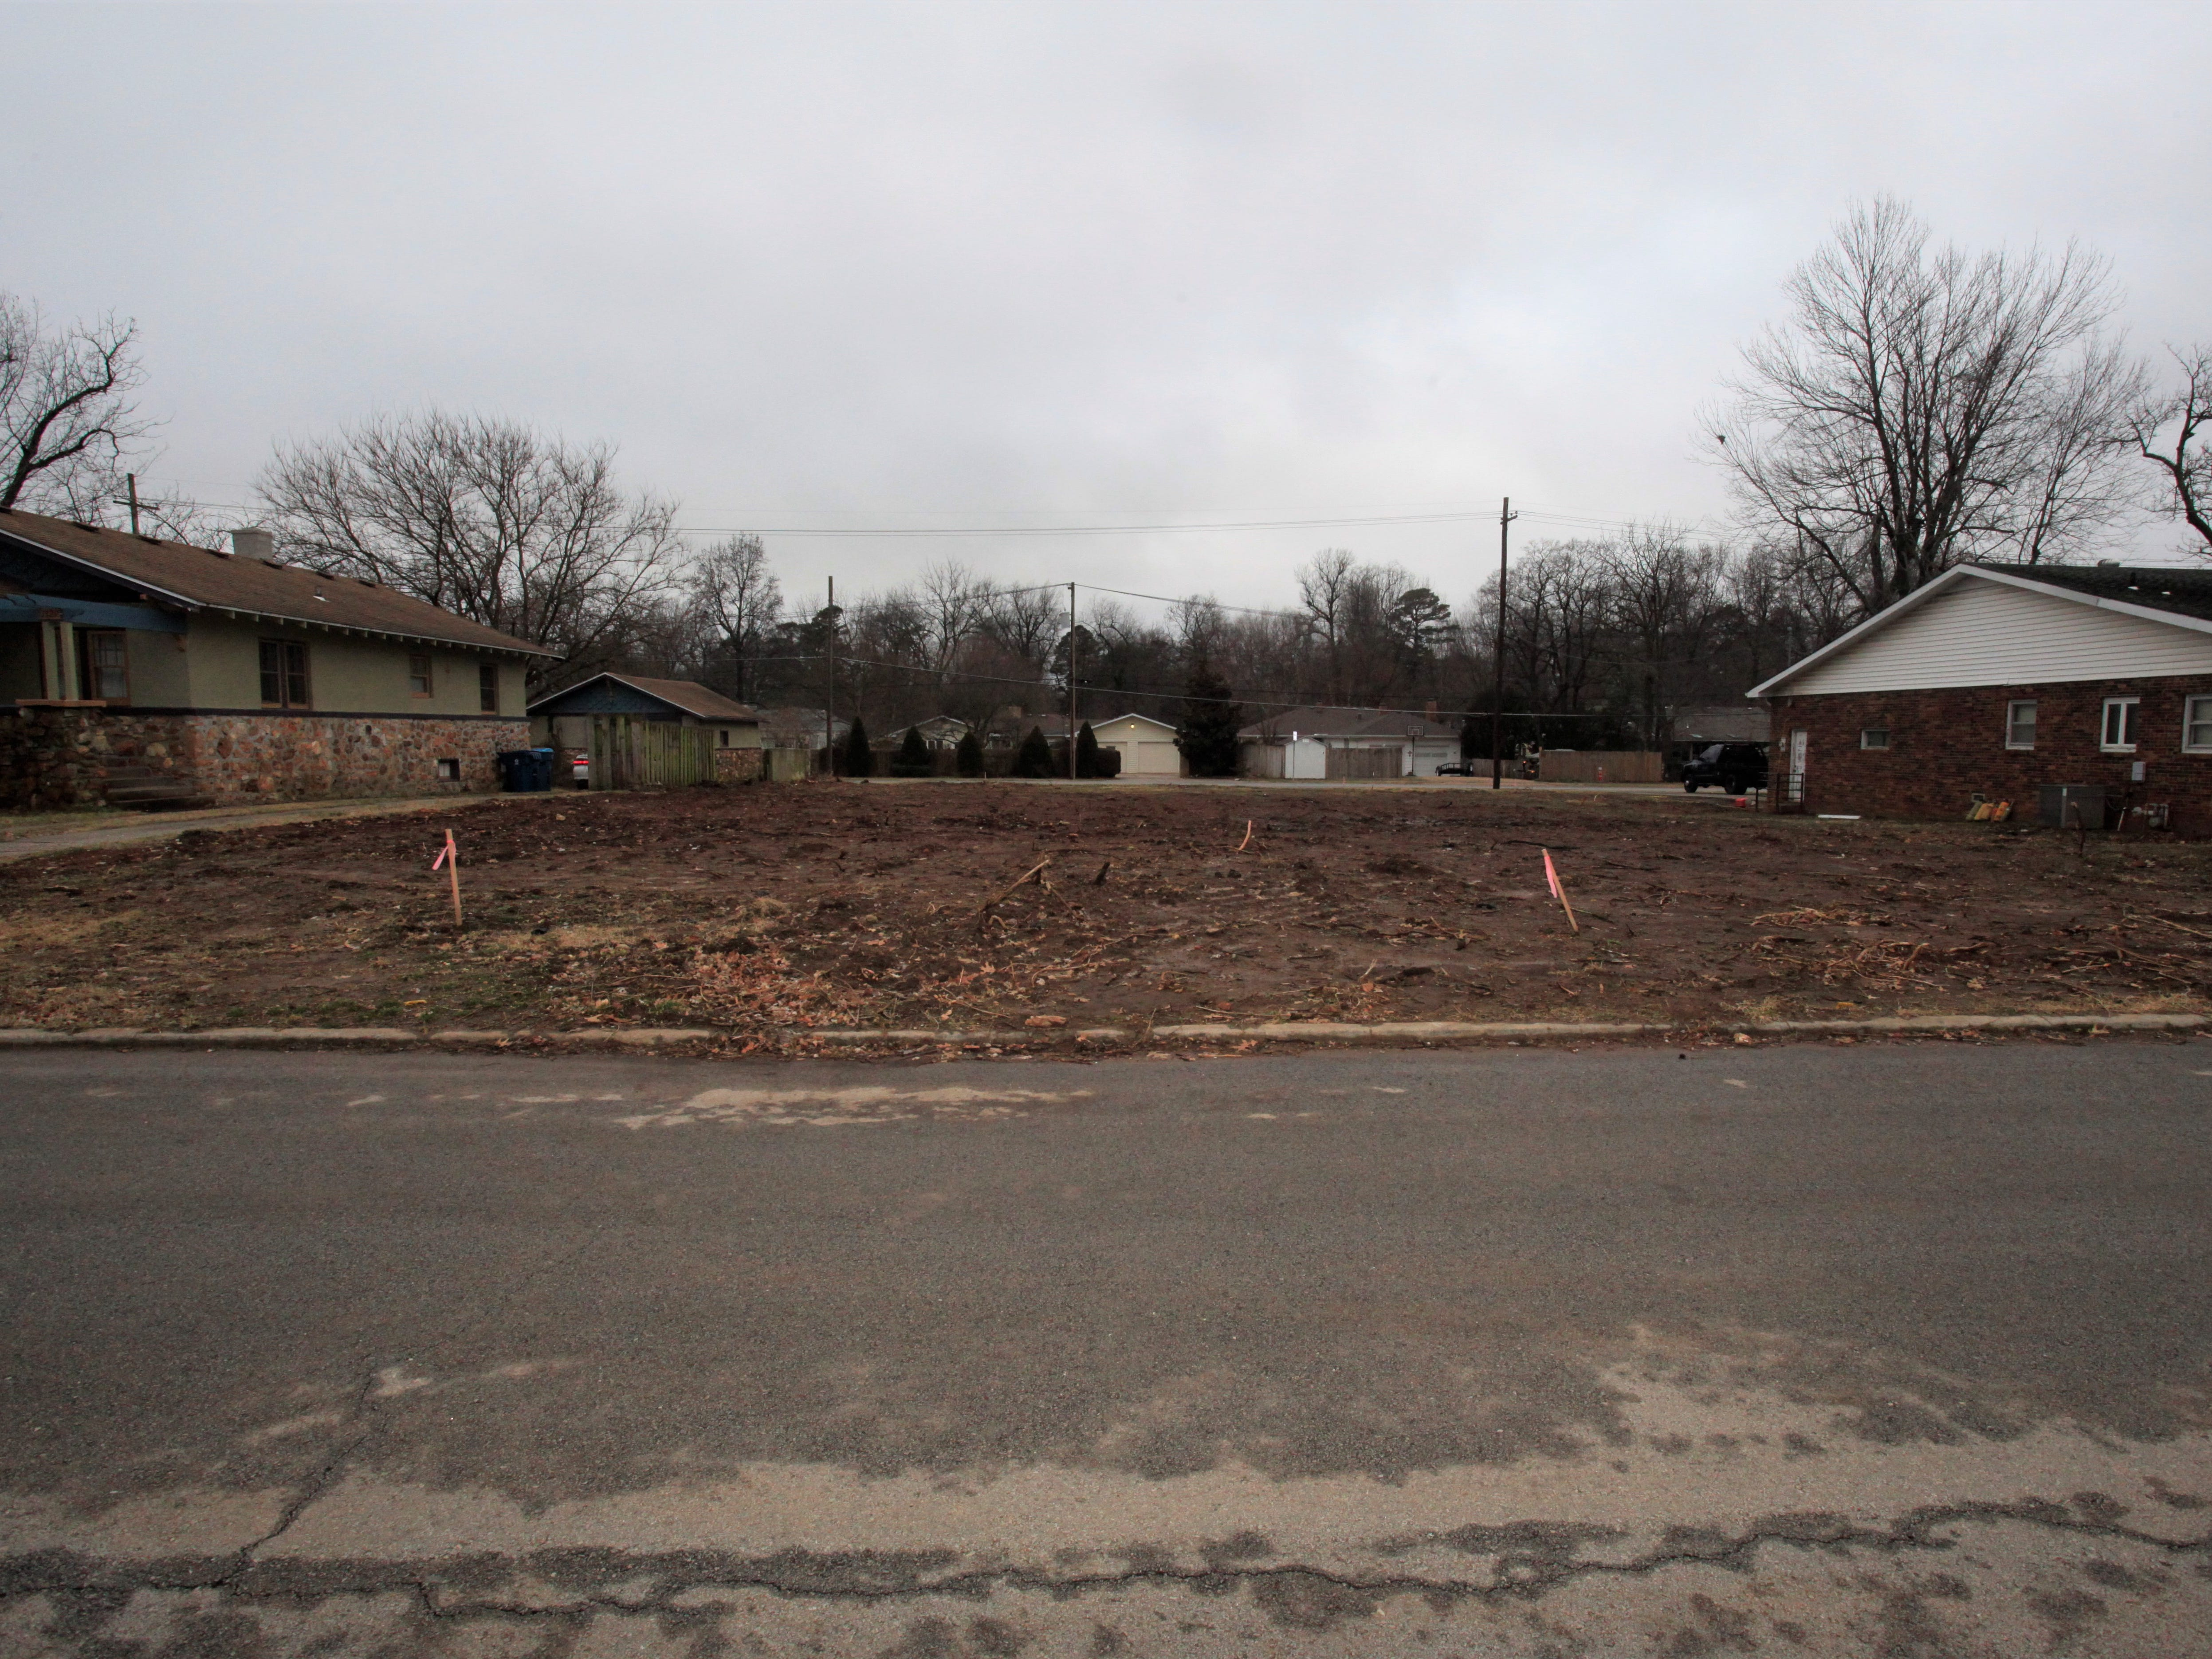 Property at 1325 S. Maryland Ave. was cleared late last year. Further development has been halted for now.